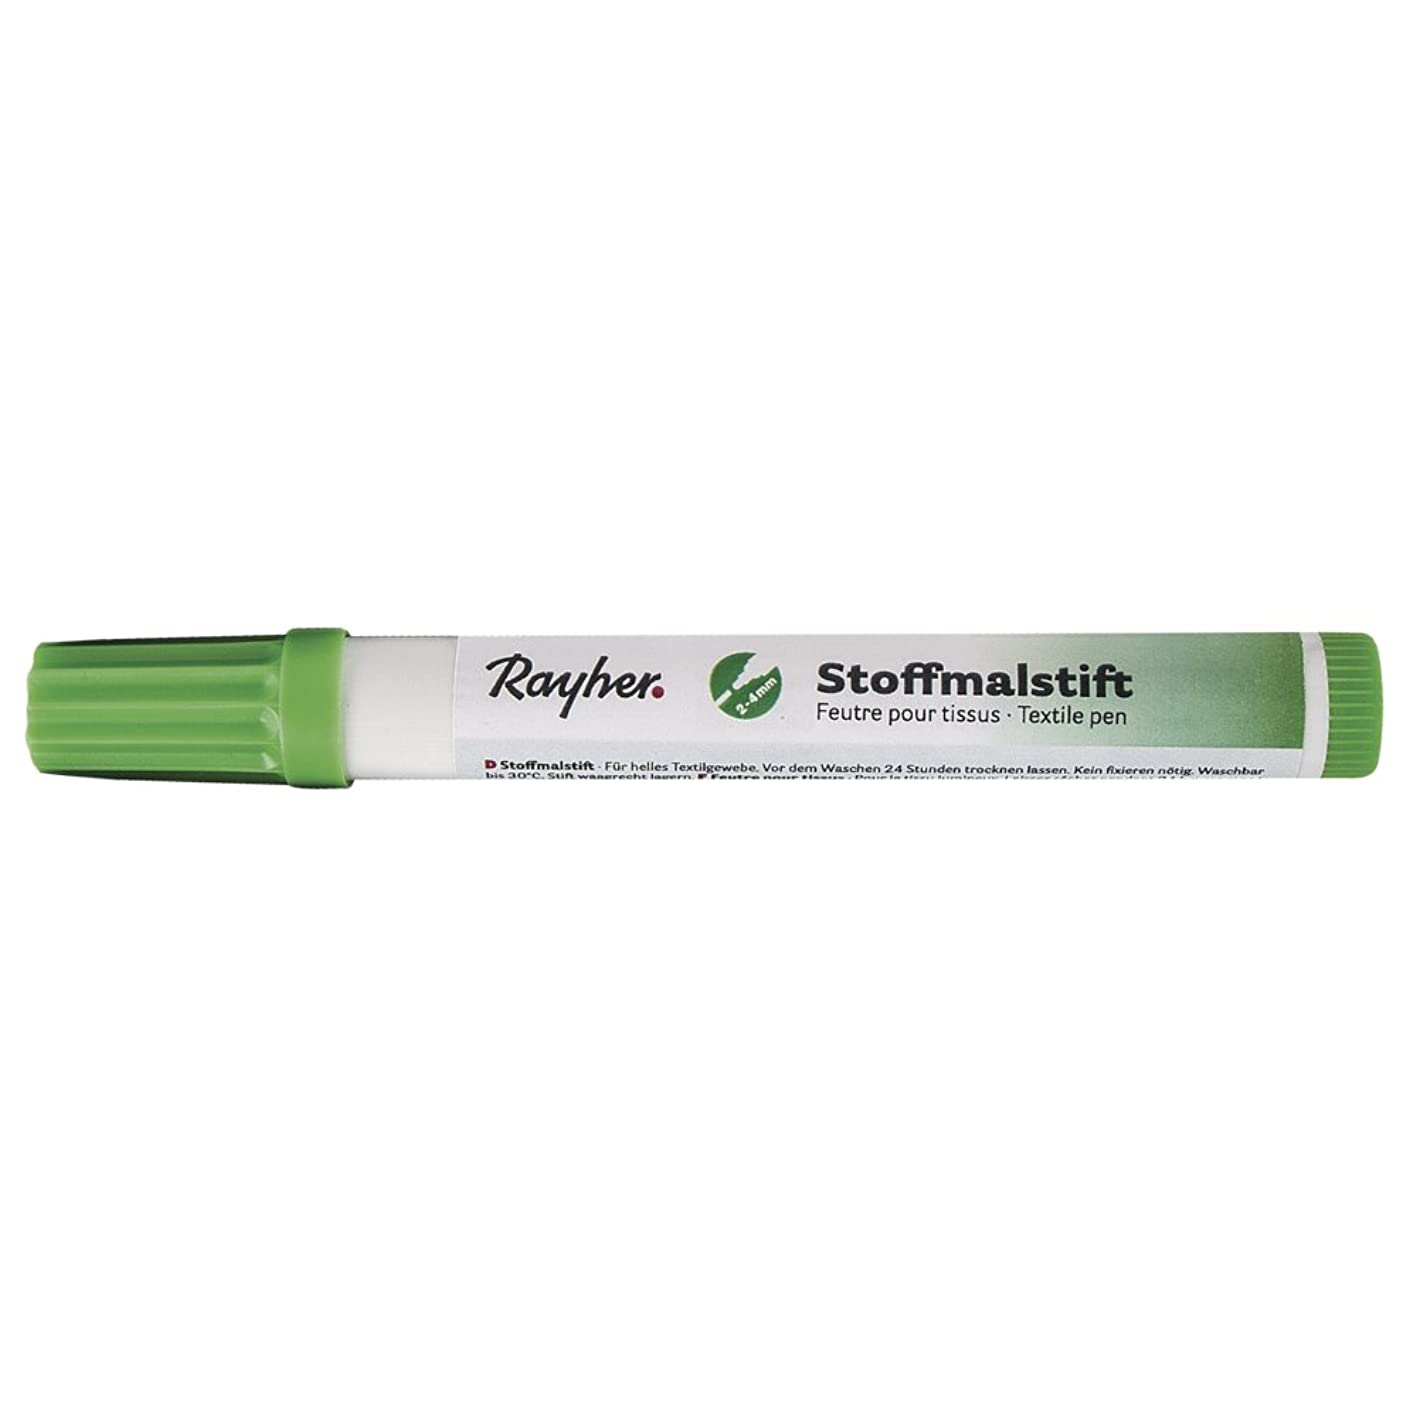 RAYHER 3825411?Fabric Crayons Thick Tip Light Green hdddpqyhhii686